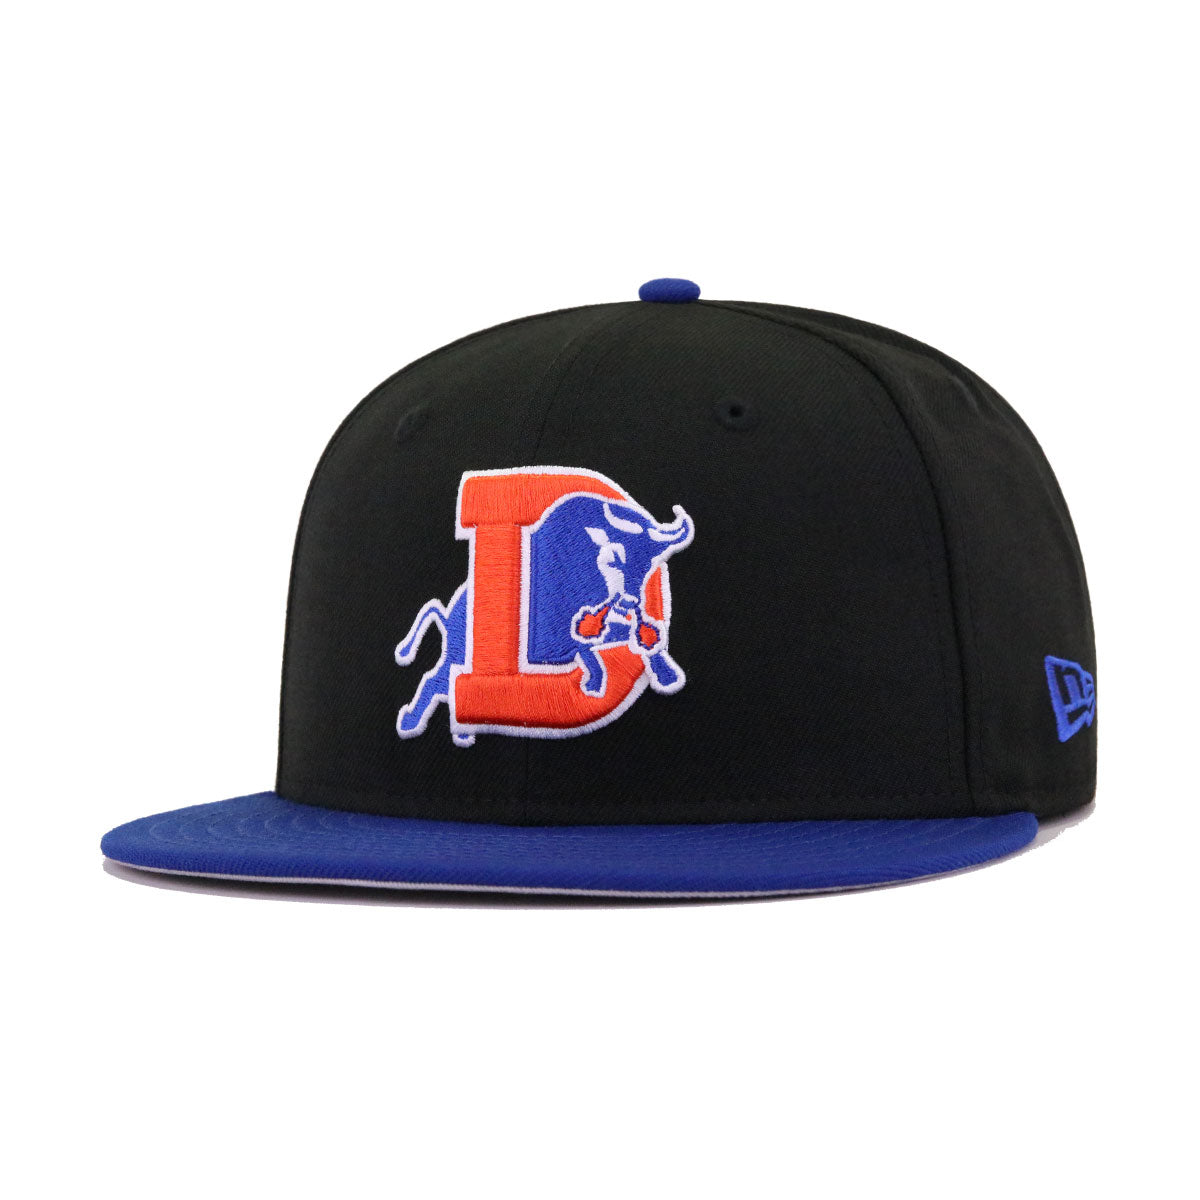 Durham Bulls Black Light Royal Blue New Era 59Fifty Fitted